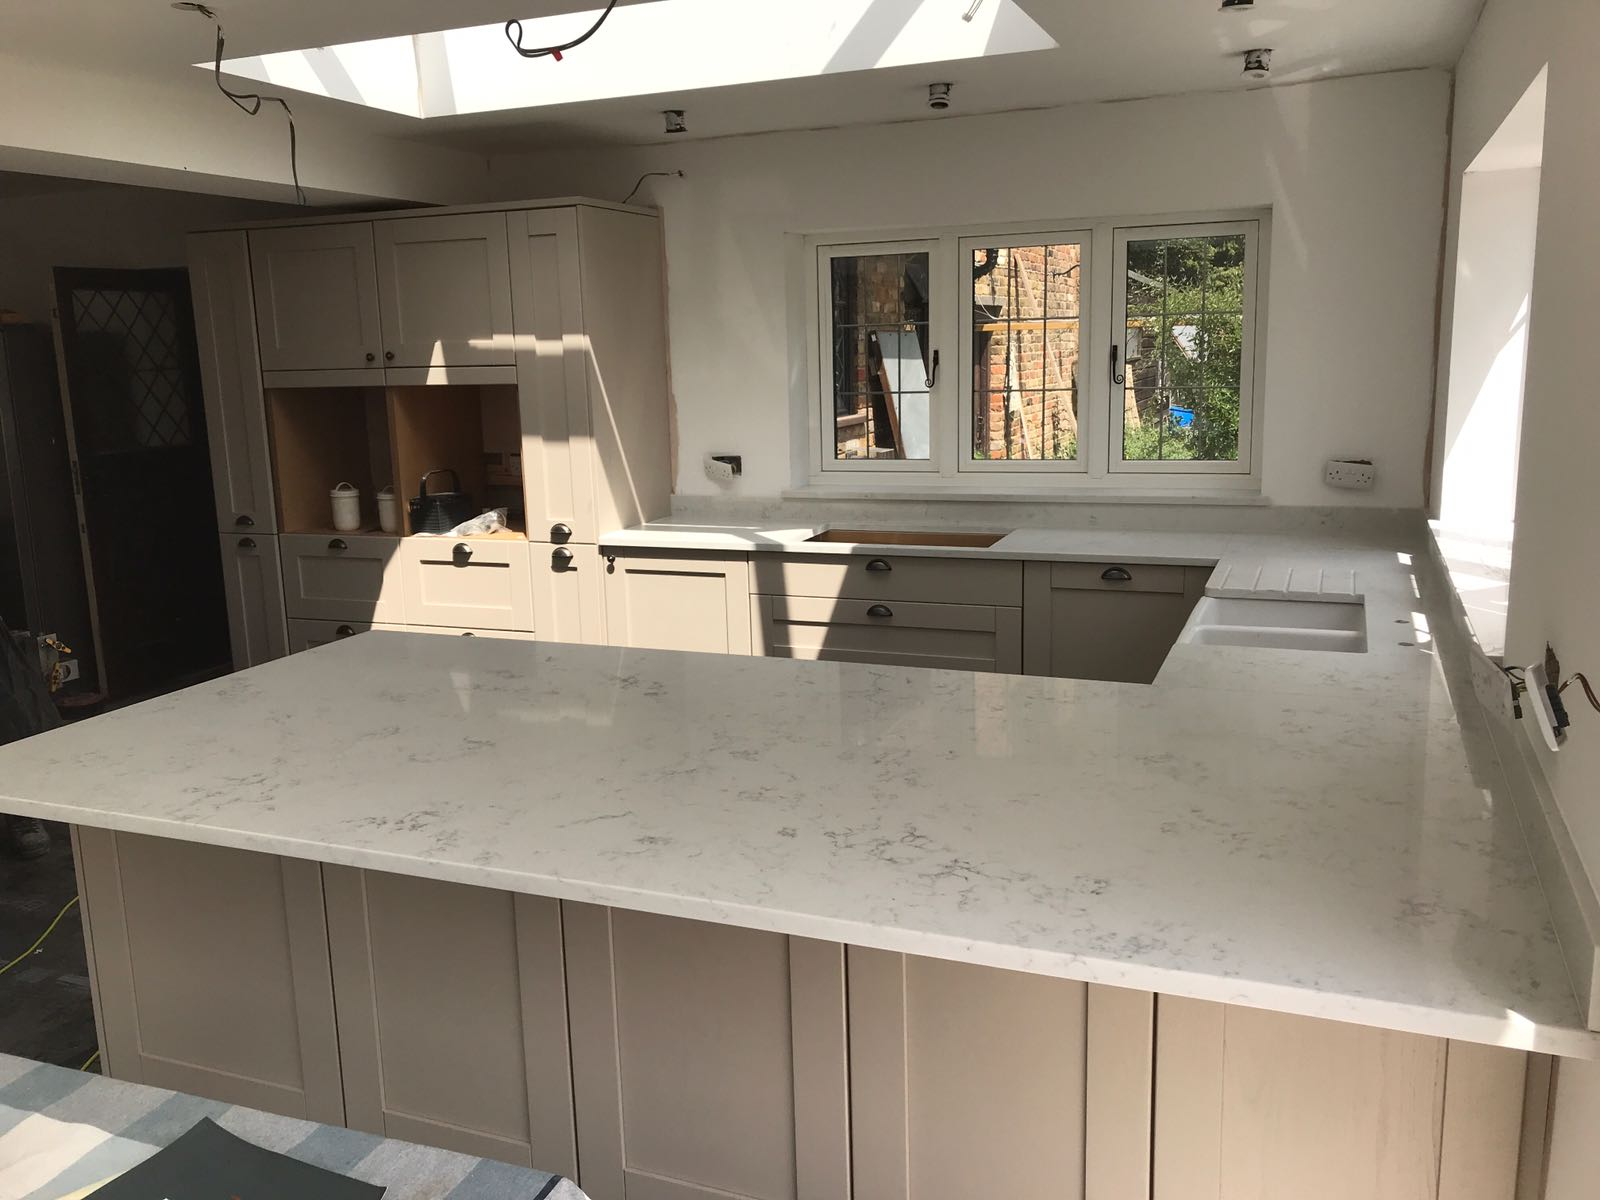 Kitchen of the week… Located in Rickmansworth, Herts, showcasing the Monaco Carrera